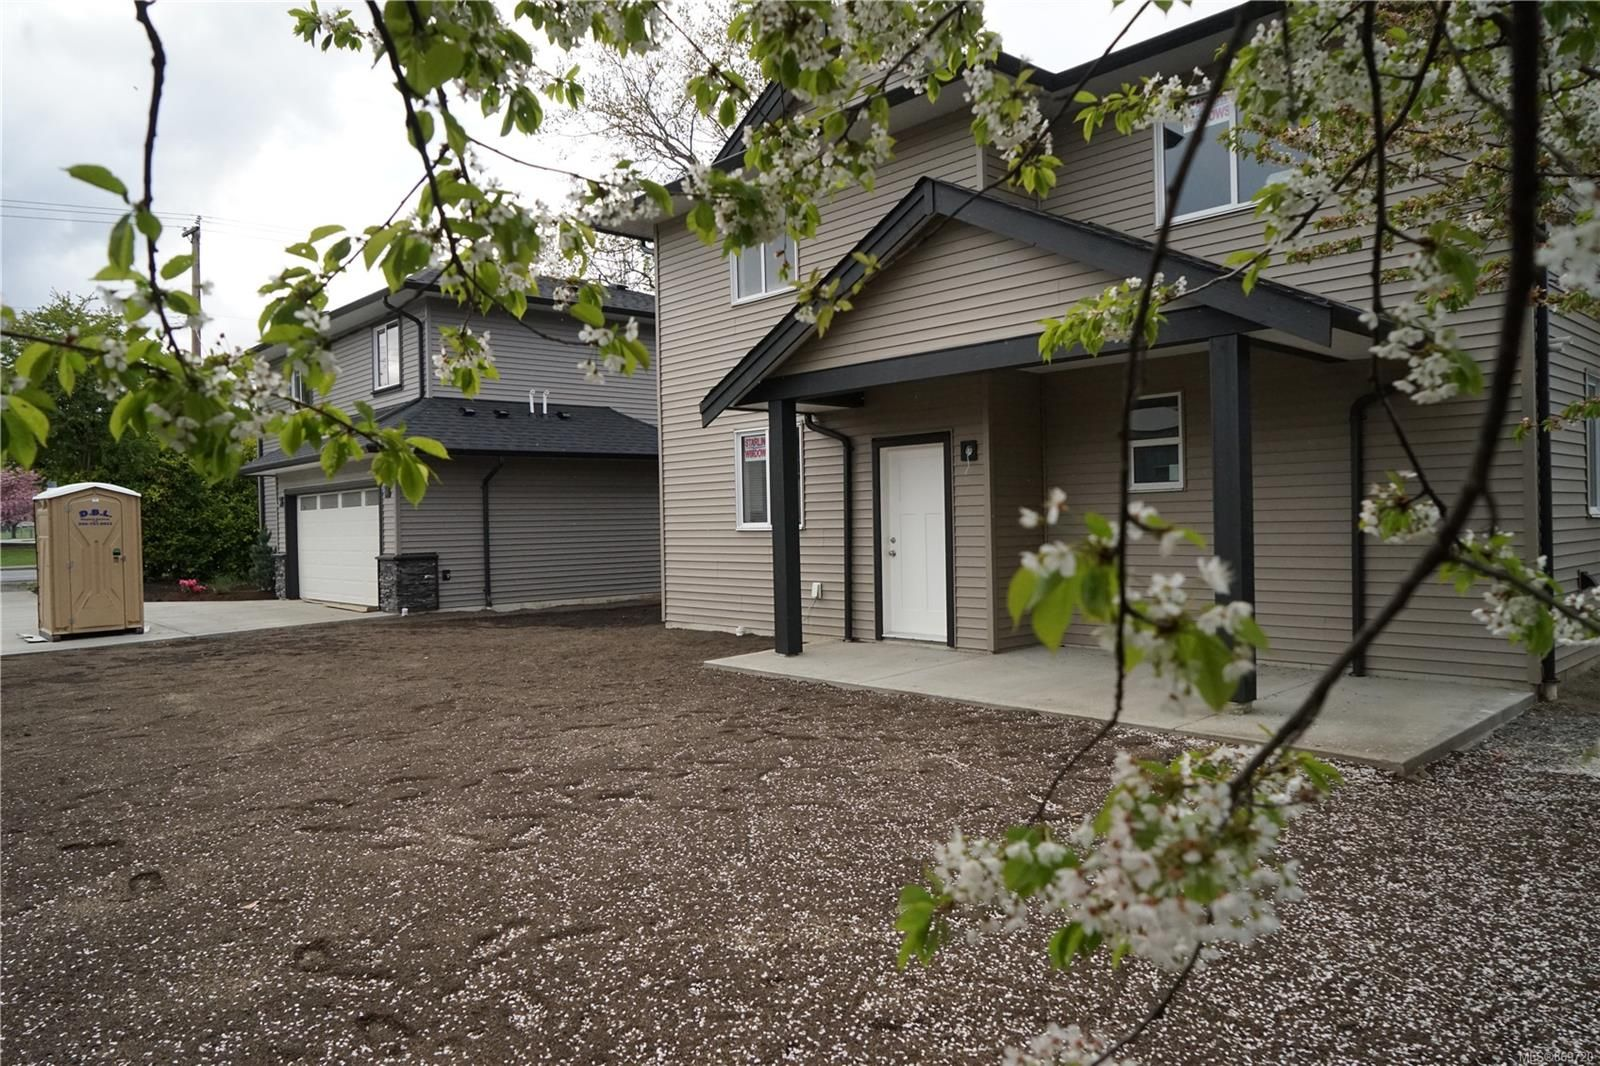 Photo 10: Photos: 770 Bruce Ave in : Na South Nanaimo House for sale (Nanaimo)  : MLS®# 869720